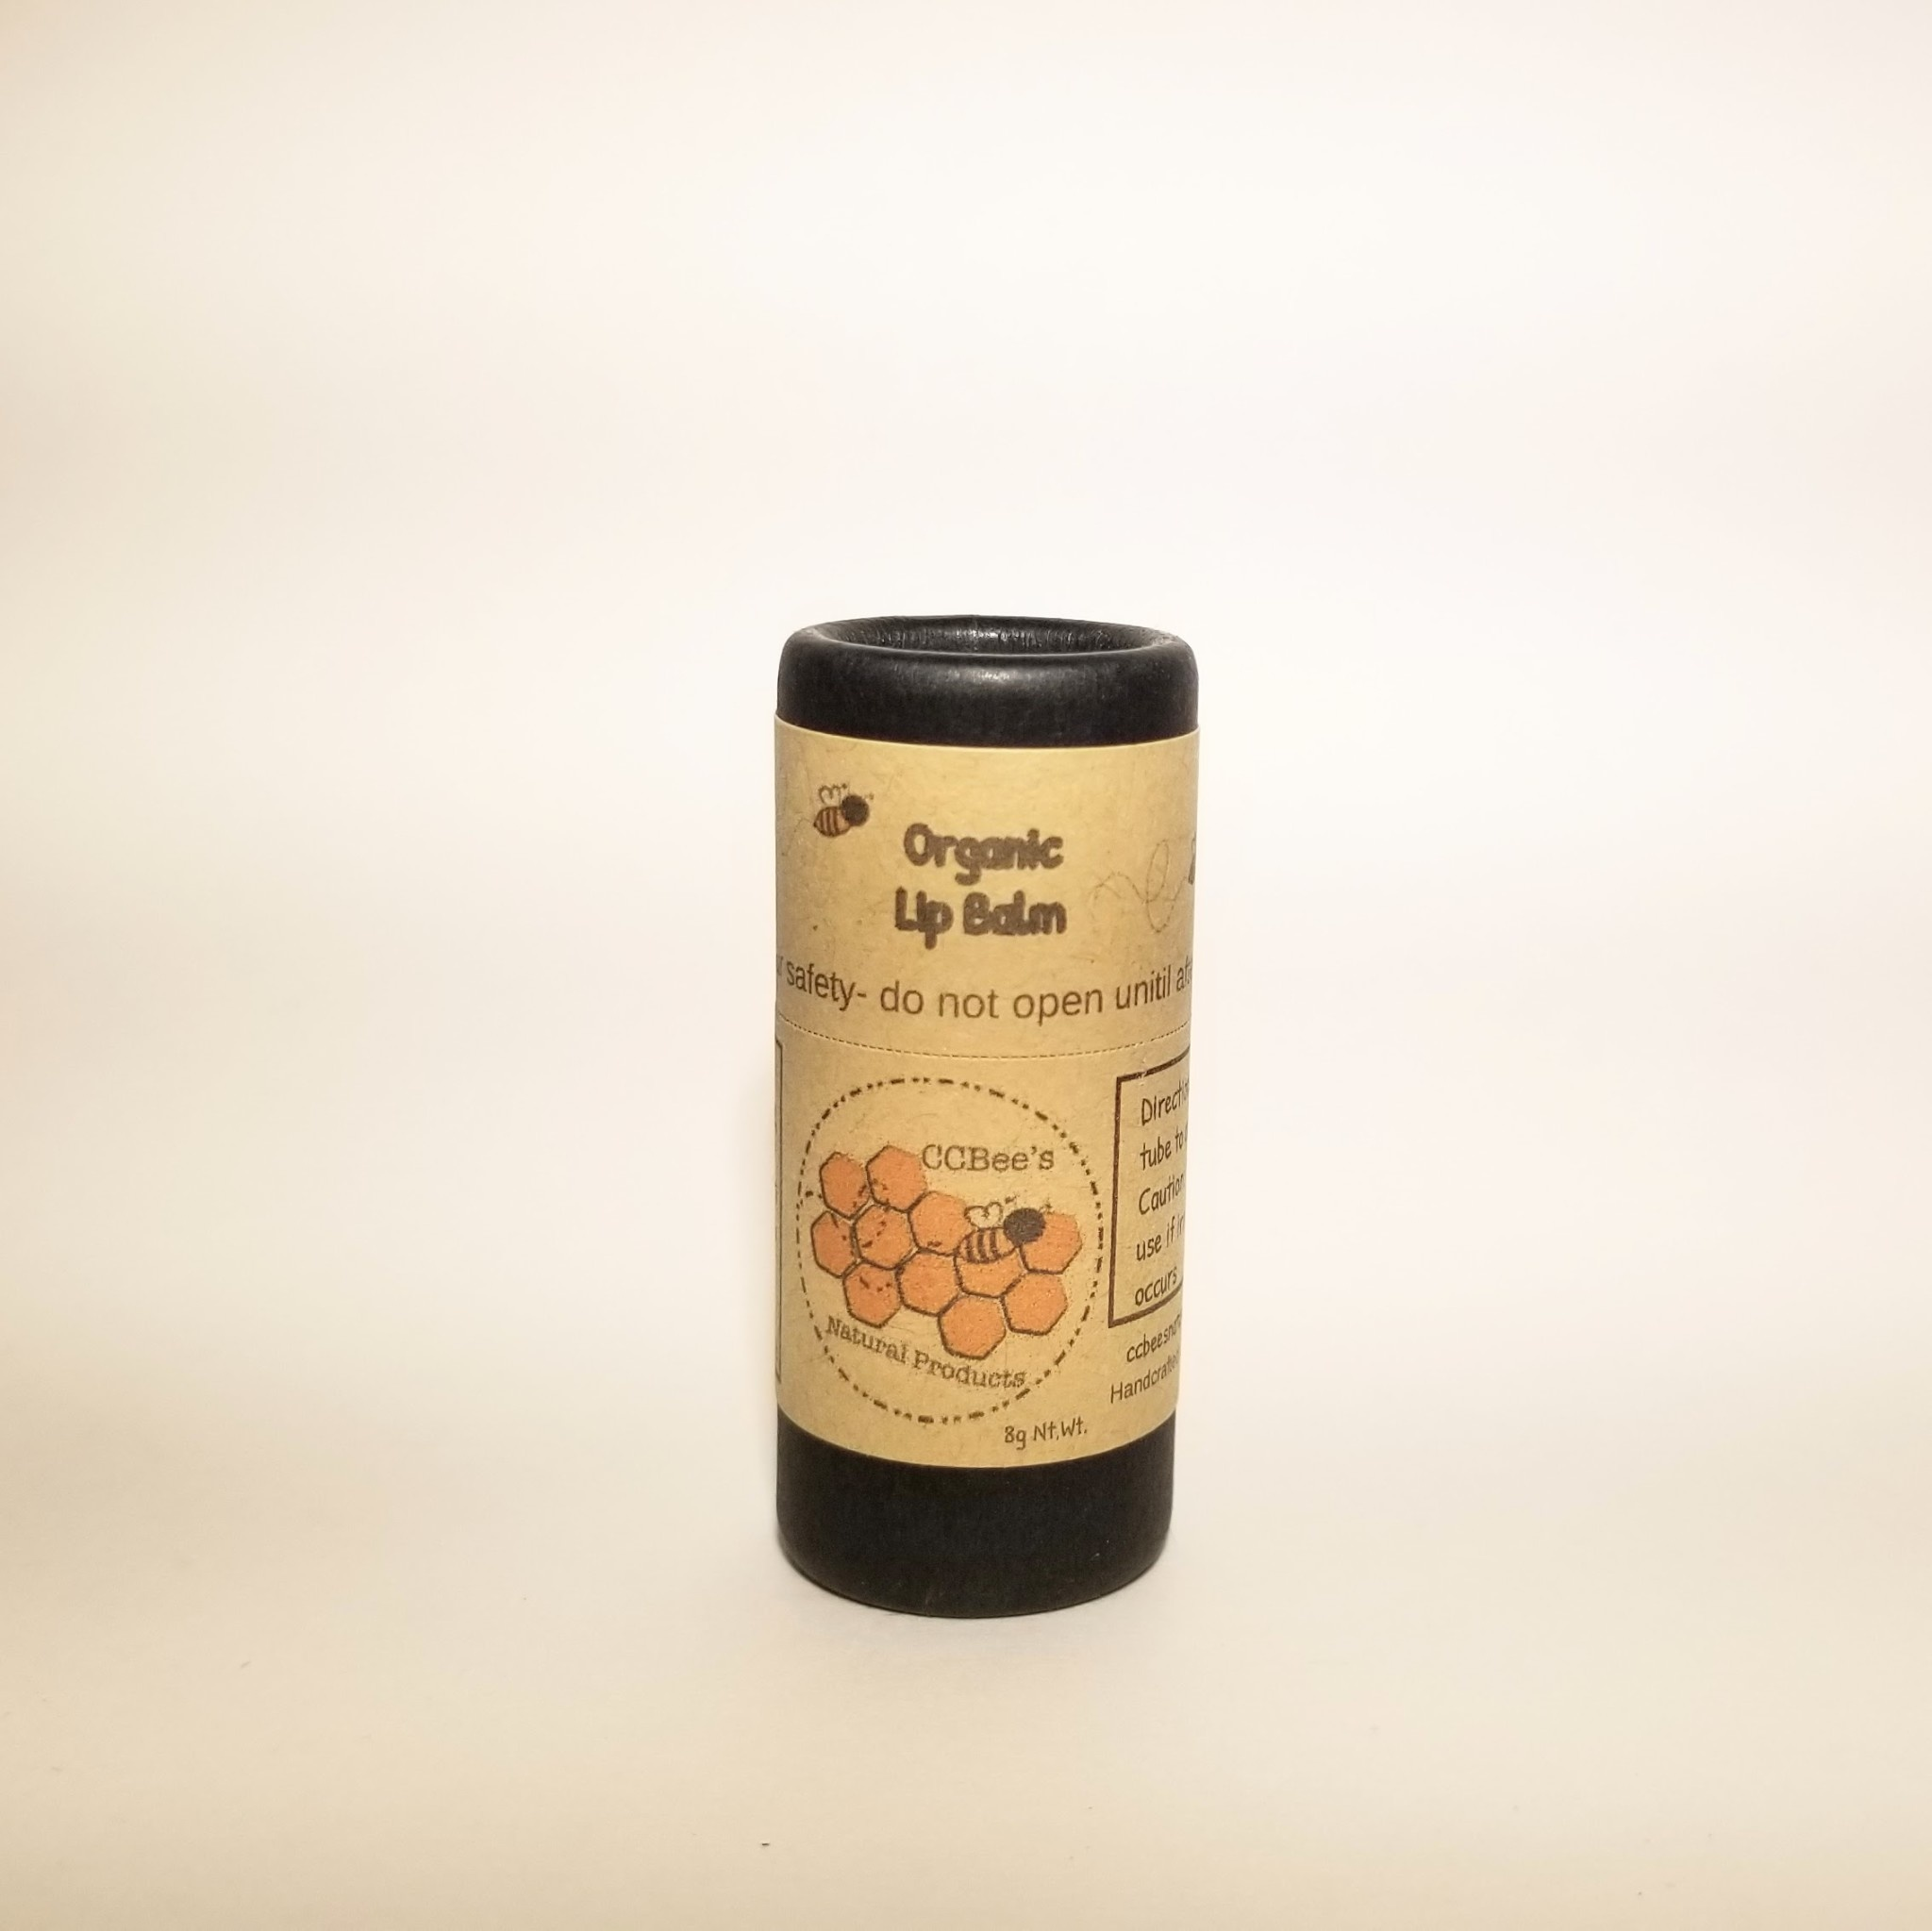 CCBee's Natural Products Lip Balm: